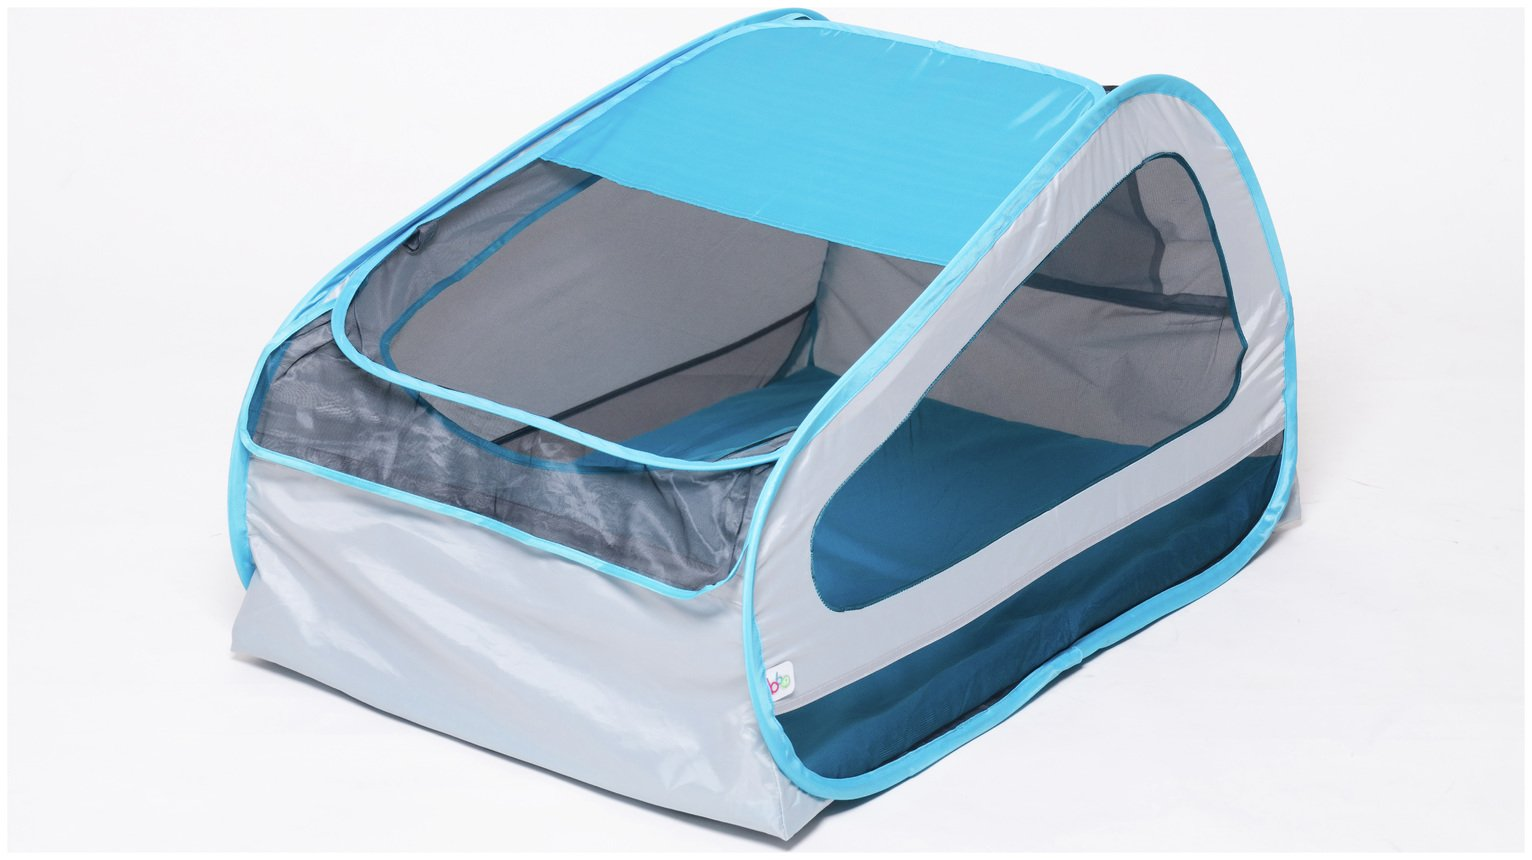 BBGG Pop Up Baby Travel Cot - Blue